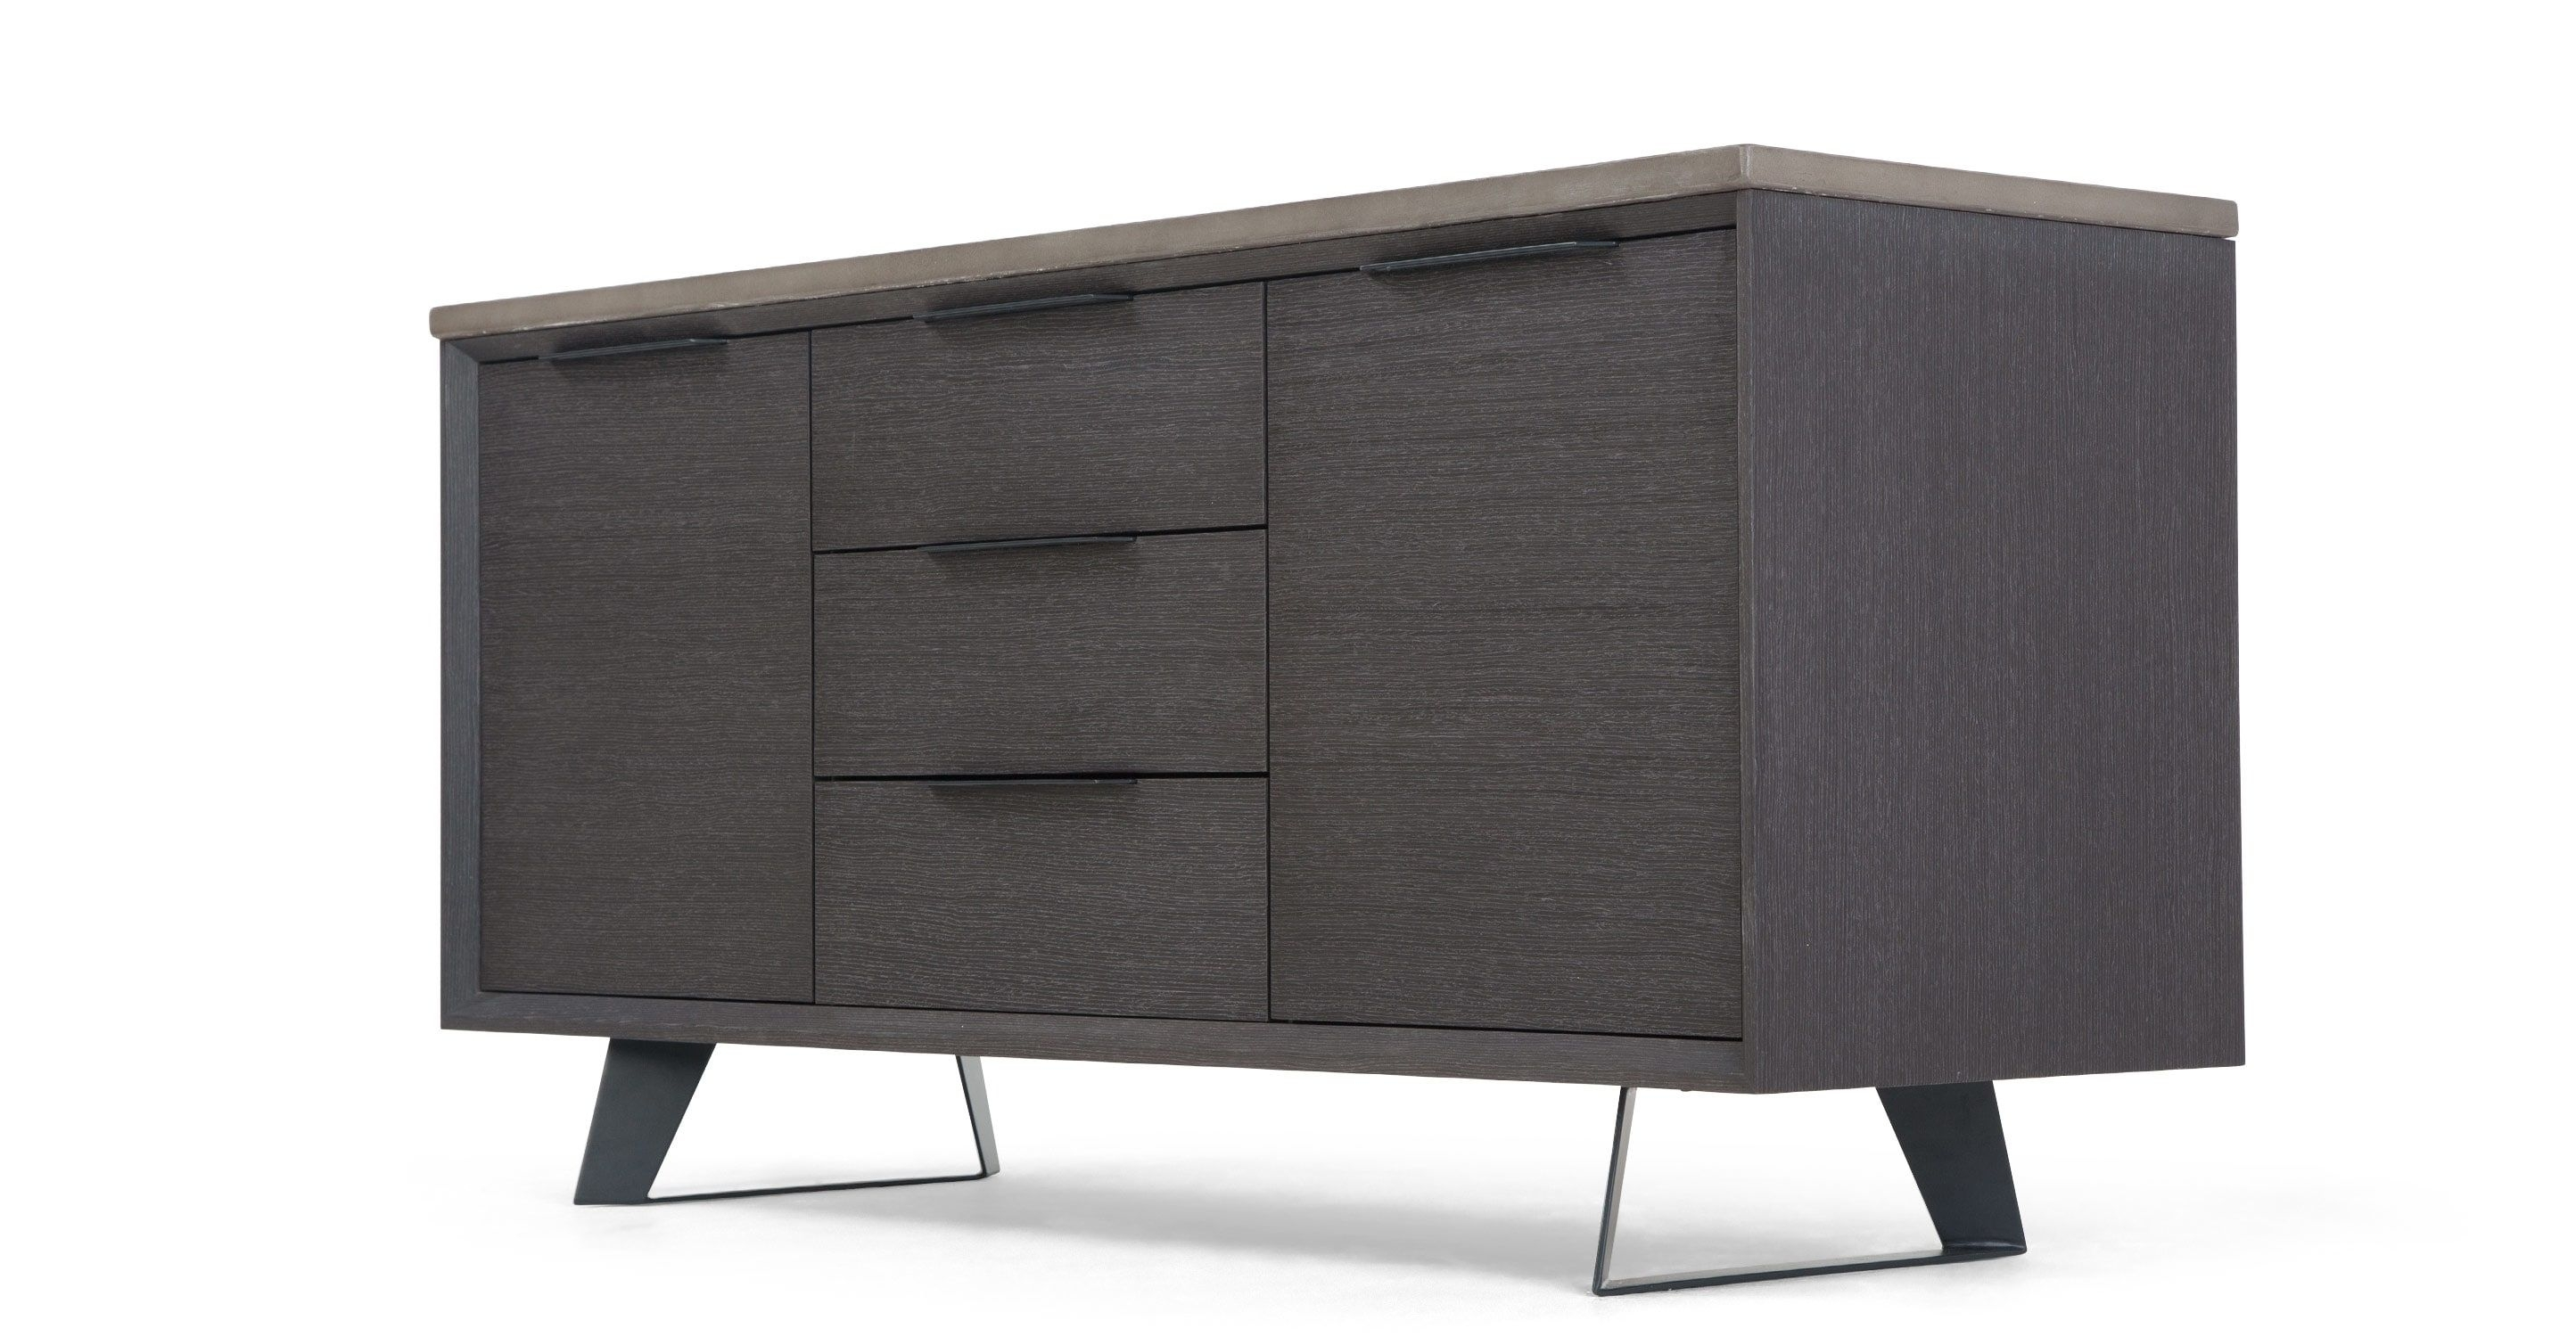 Boone Sideboard, Concrete Resin Top From Made. Grey/black pertaining to Oil Pale Finish 3-Door Sideboards (Image 10 of 30)